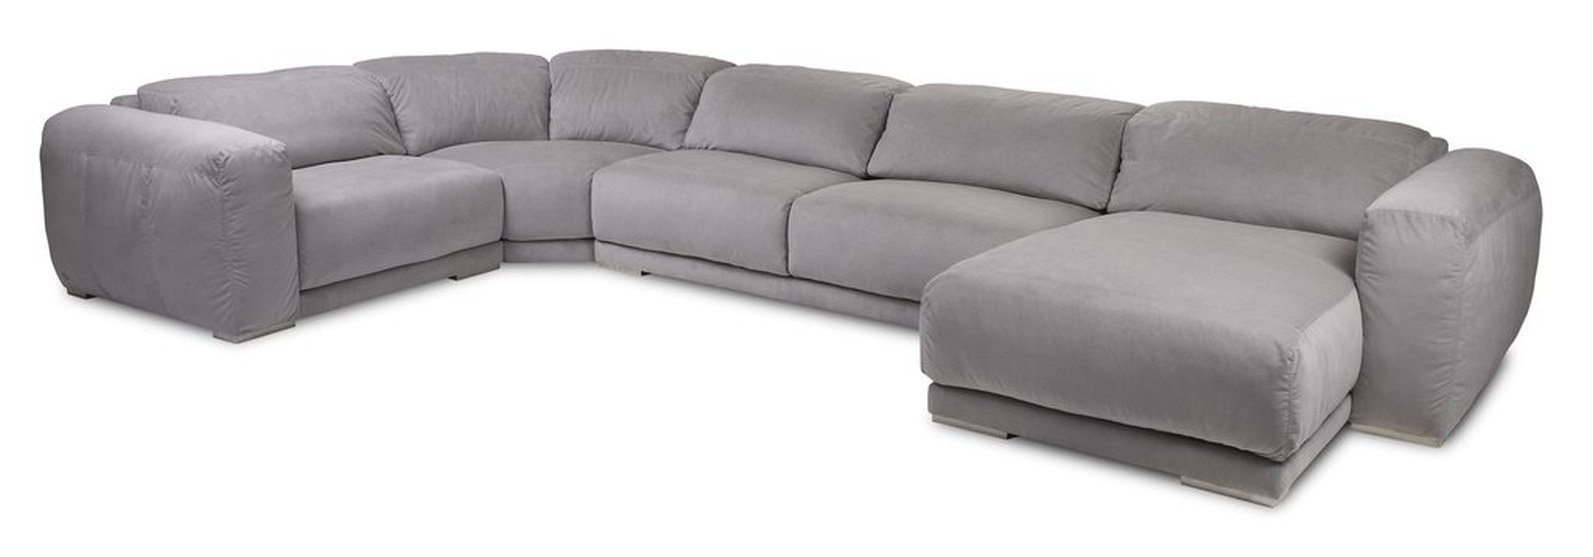 Sectional Sofa: Sectional Sofa Ottawa Dramatic Charming Sofa Sale For Preferred Gatineau Sectional Sofas (View 11 of 15)